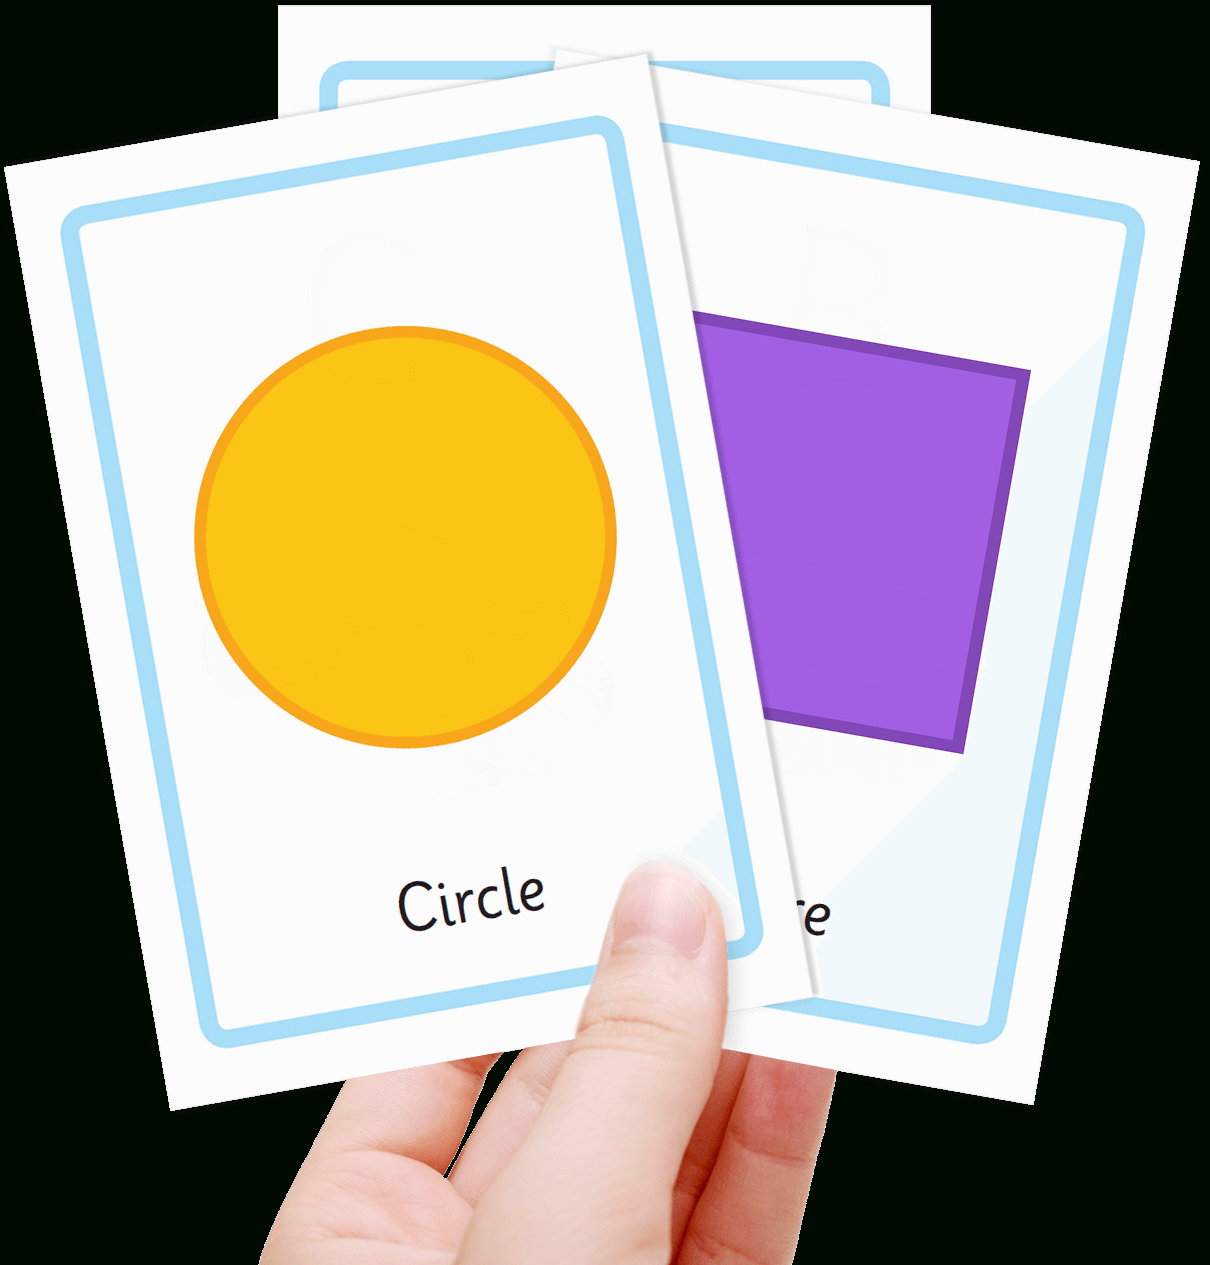 Free Shape Flashcards For Kids - Totcards - Free Printable Flash Cards